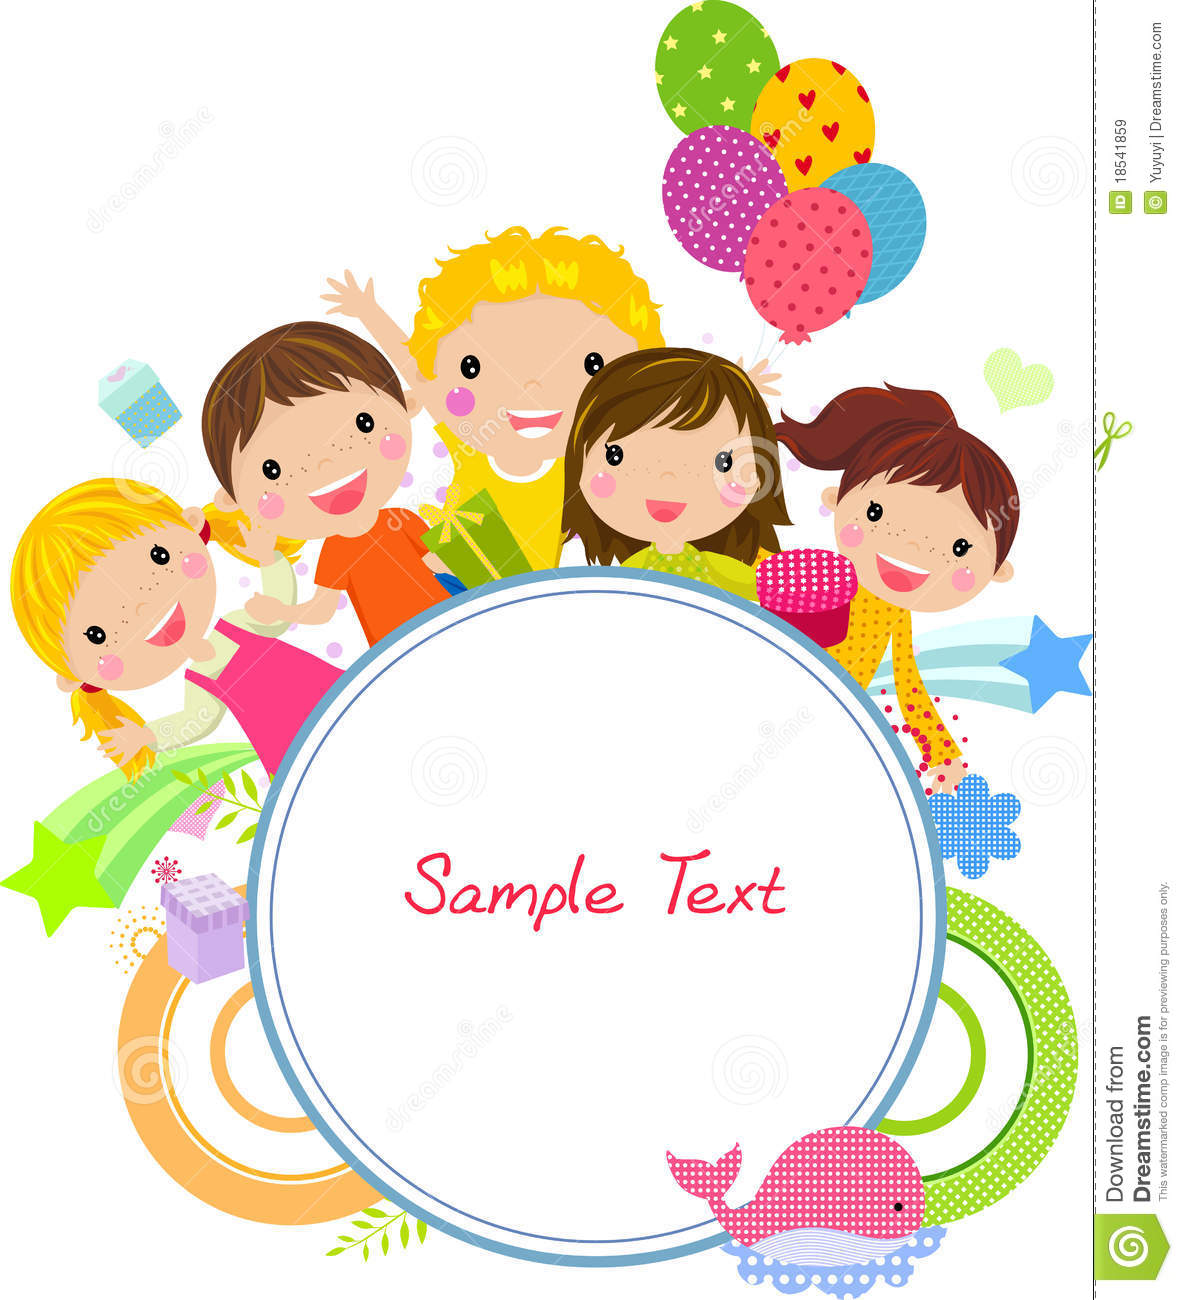 cute cartoon kids frame - Cartoon For Kids Download